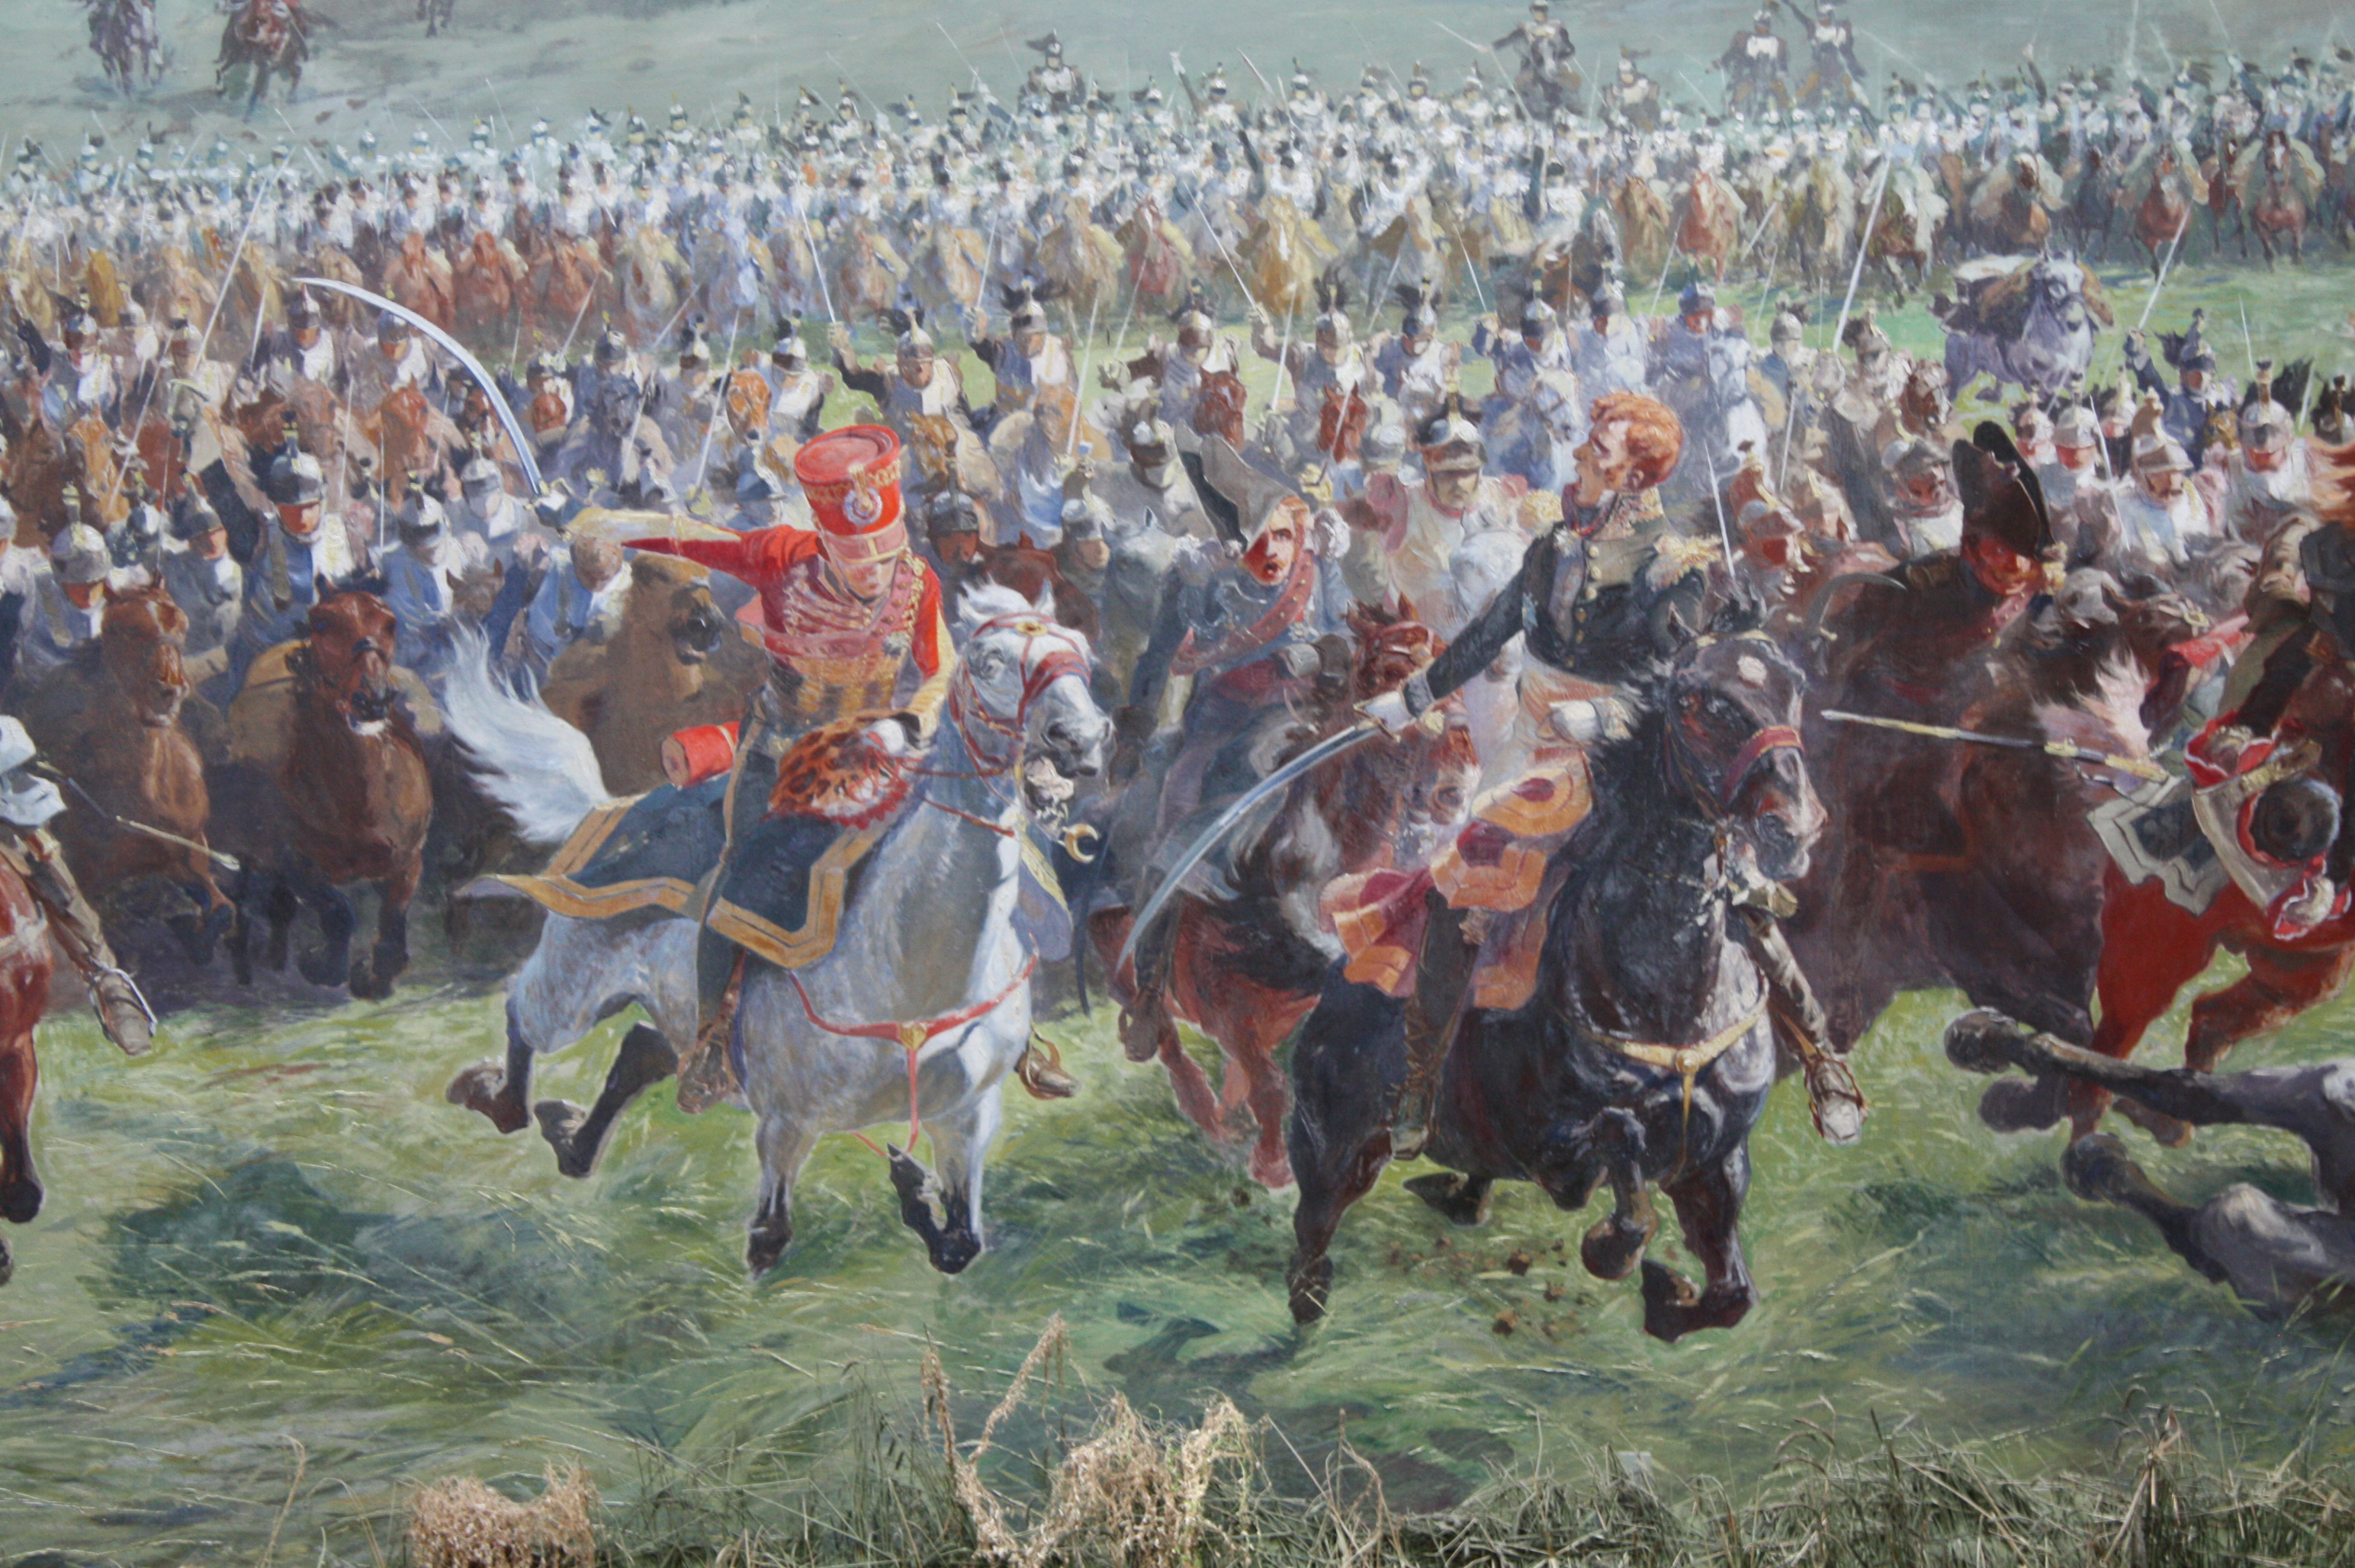 """Marshall Ney and his staff leading the cavalry charge at Waterloo,"" by Louis Dumoulin (1860-1924). Public domain, via Wikimedia Commons."